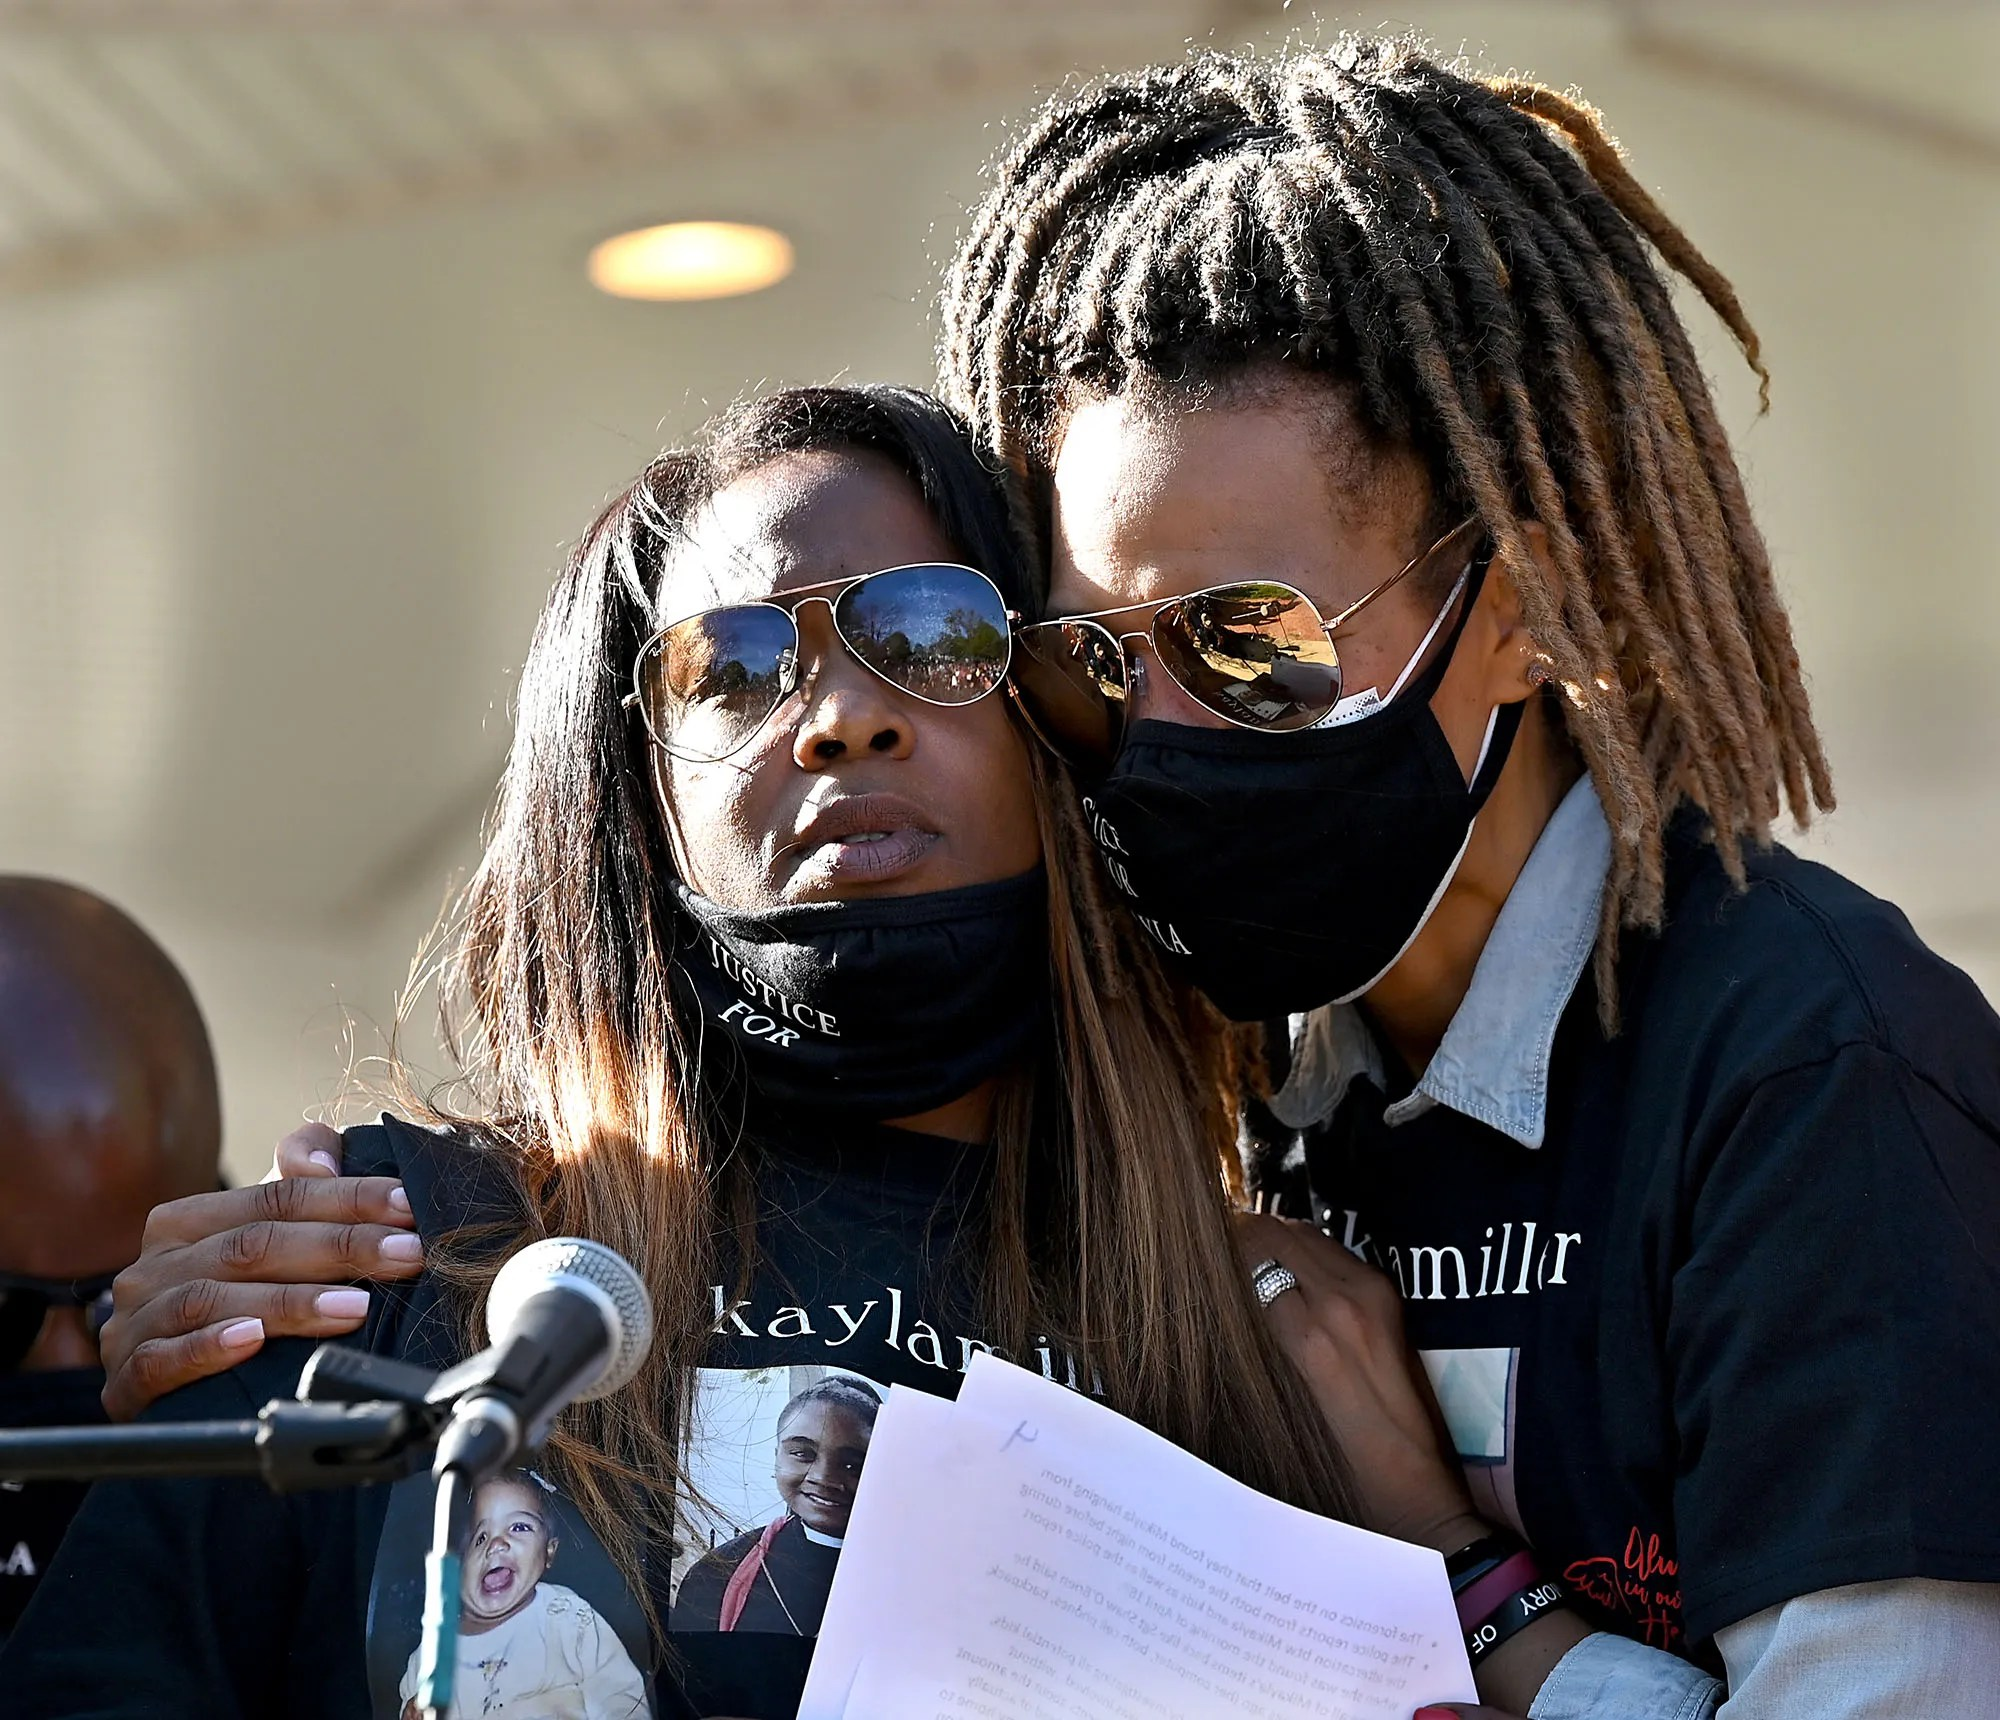 Calvina Strothers of Hopkinton,  left, the mother of Mikayla Miller, is comforted by Angela Clark, a cousin, during a rally on Hopkinton Common  drawing attention to the investigation into the Hopkinton sophomore's death, on May 6, 2021. Miller, 16, was found dead in the woods near her Hopkinton home April 18.